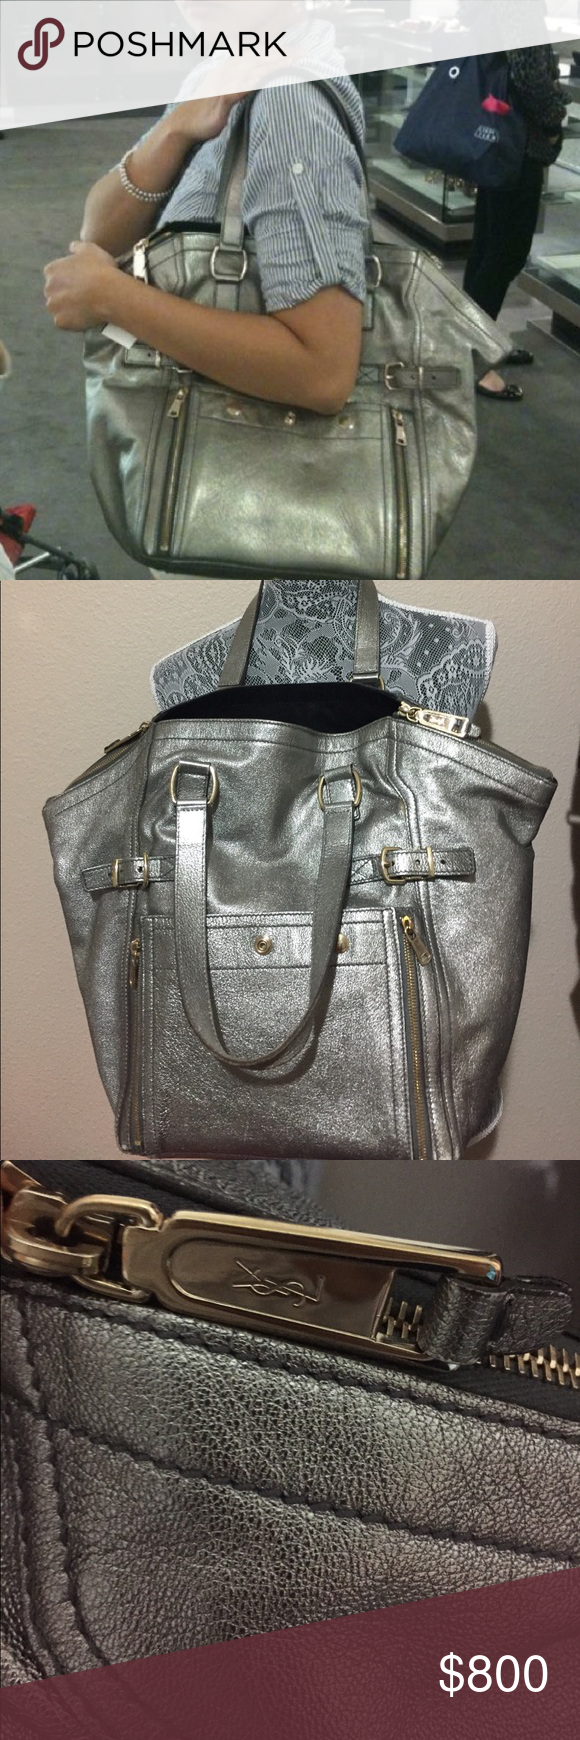 ead22cc4244 Authentic Metallic YSL Downtown Tote This iconic YSL Tote is a must to add  to any closet! Hardware is light gold. Preloved with some scuffs to front,  sides, ...